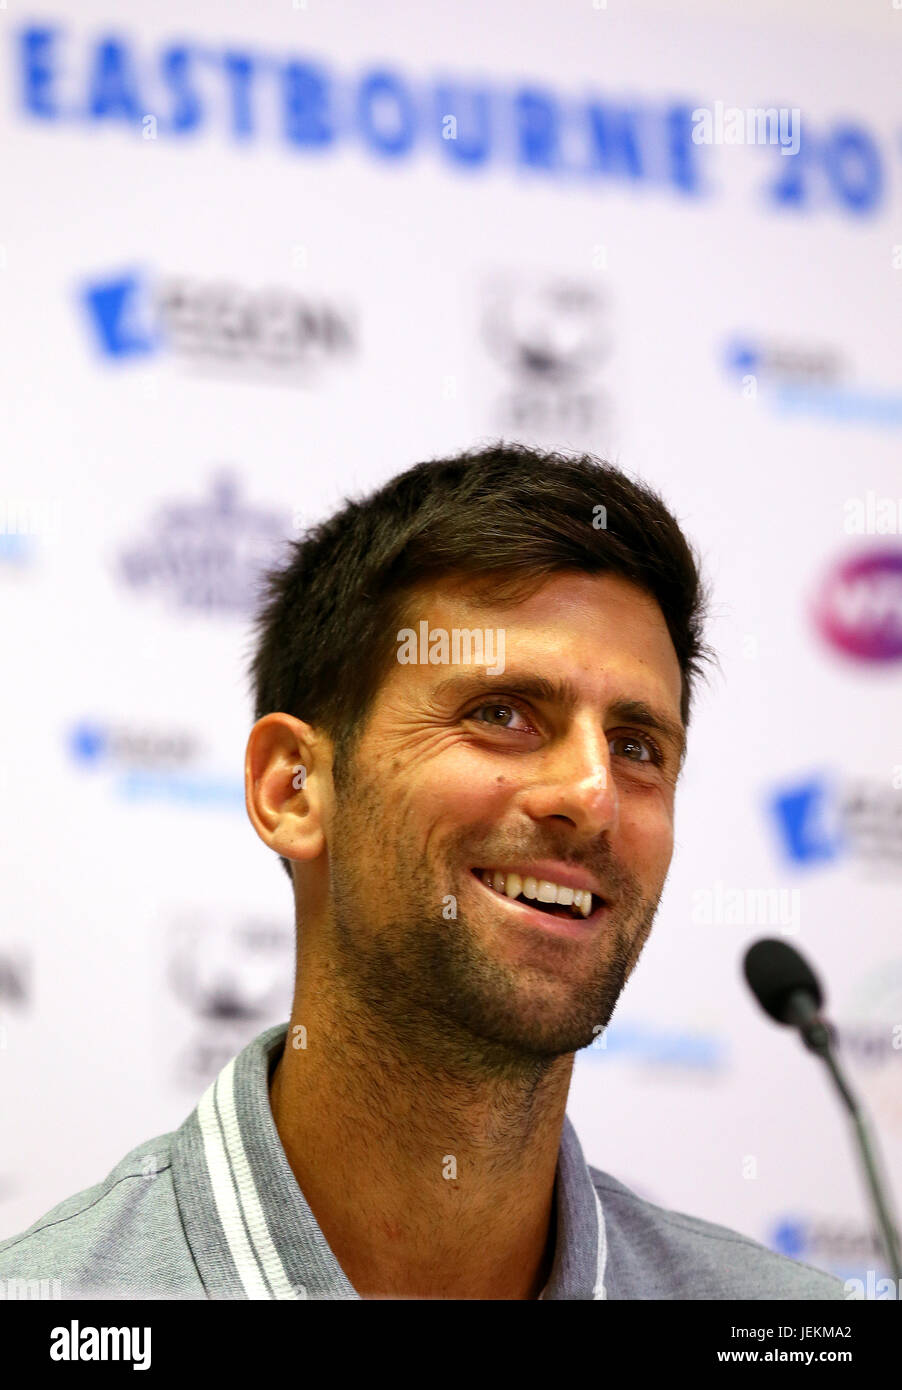 Serbia's Novak Djokovic during a press conference during day four of the AEGON International at Devonshire Park, - Stock Image